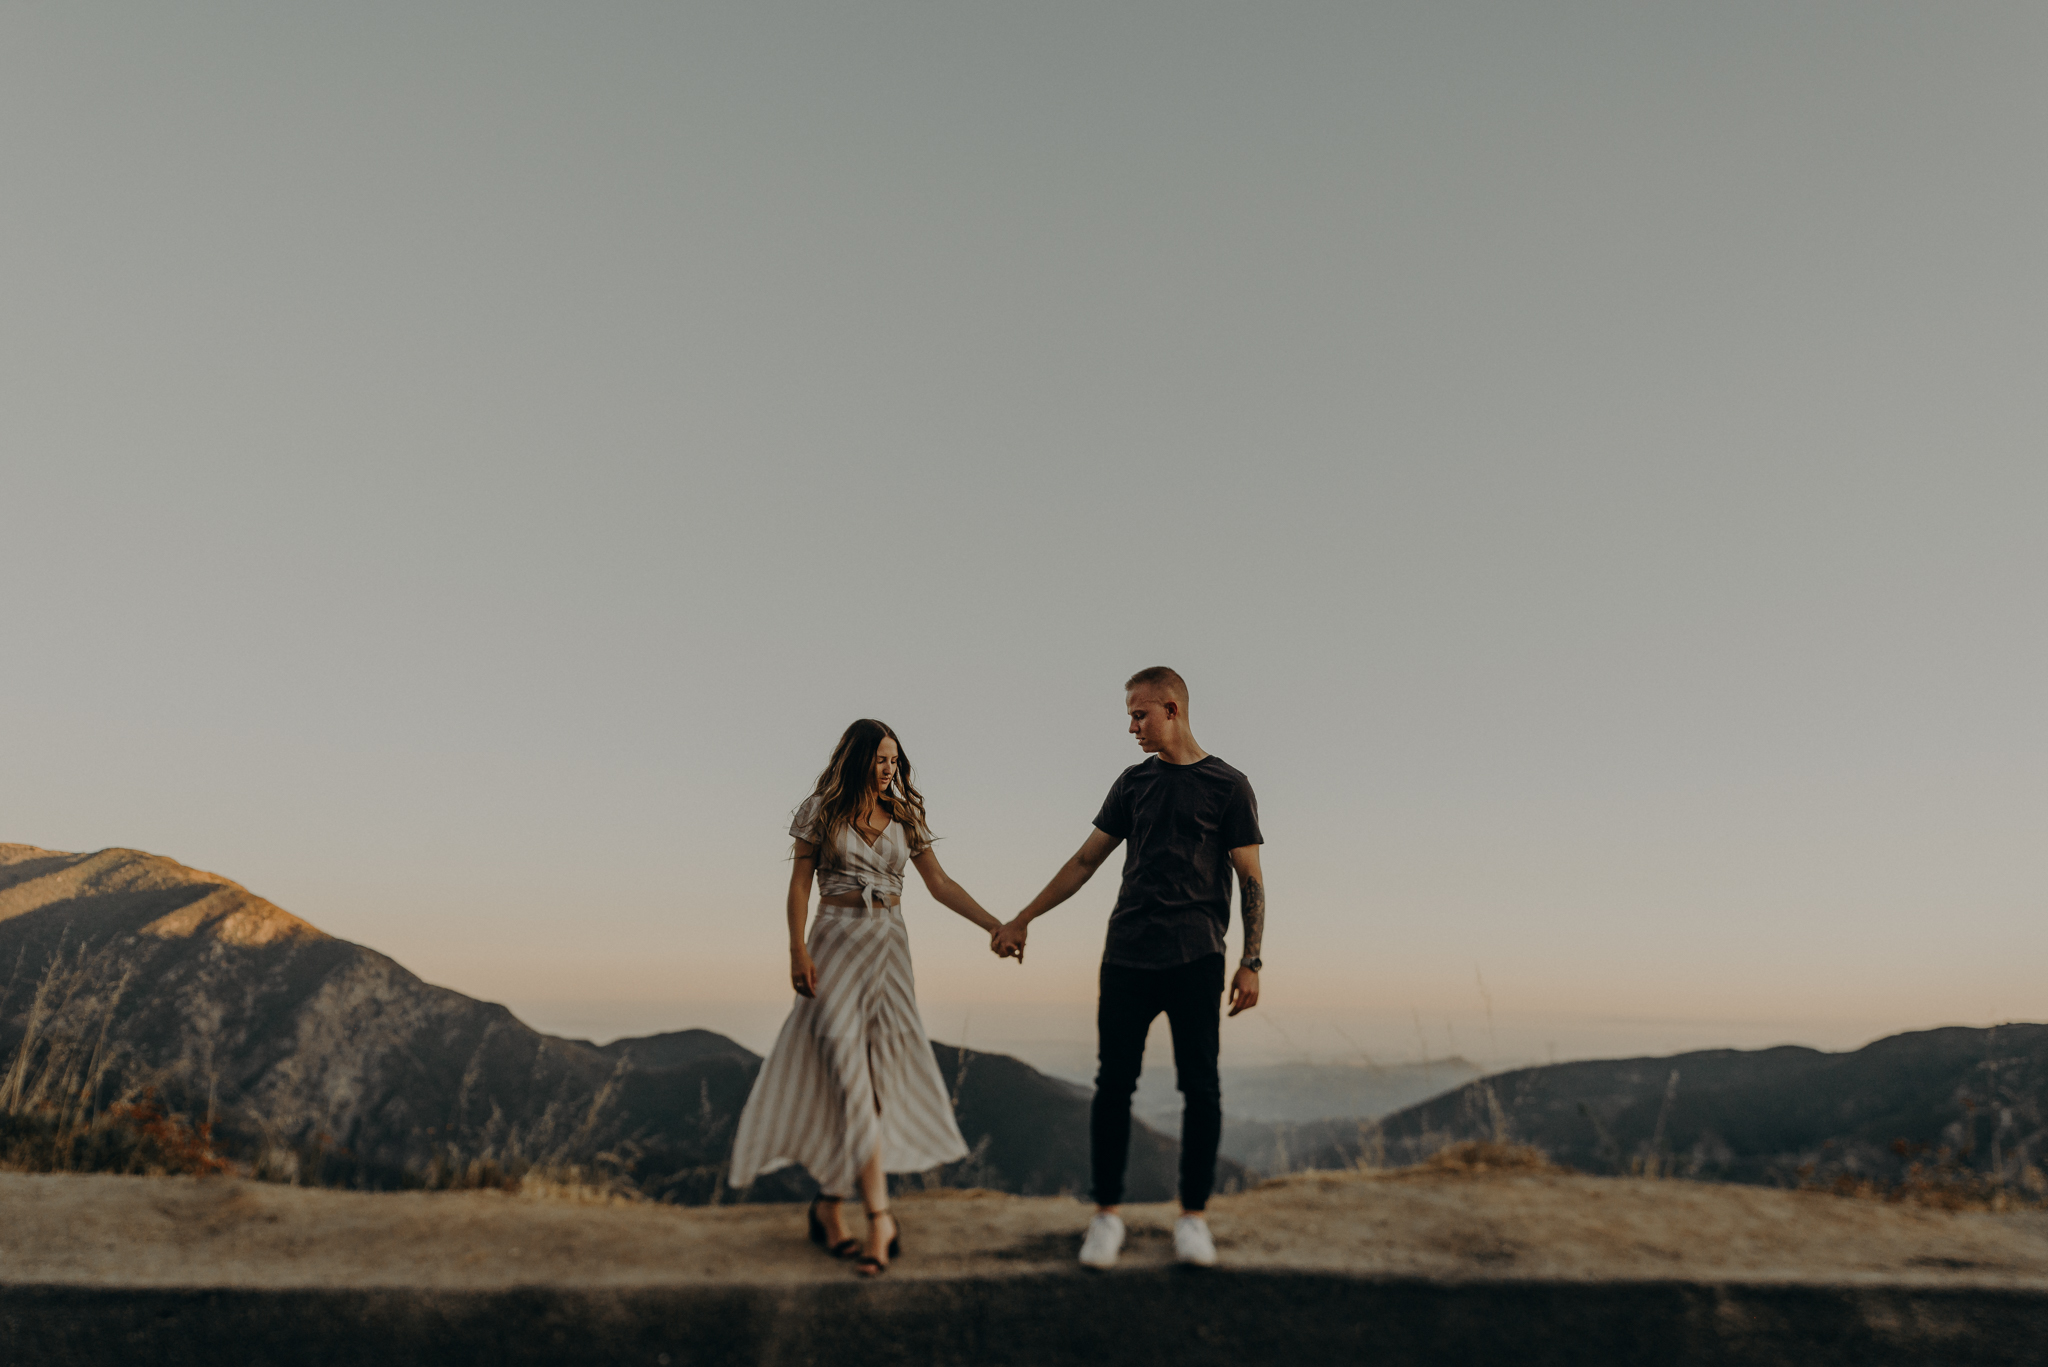 Isaiah + Taylor Photography - Los Angeles Forest Engagement Session - Laid back wedding photographer-003.jpg